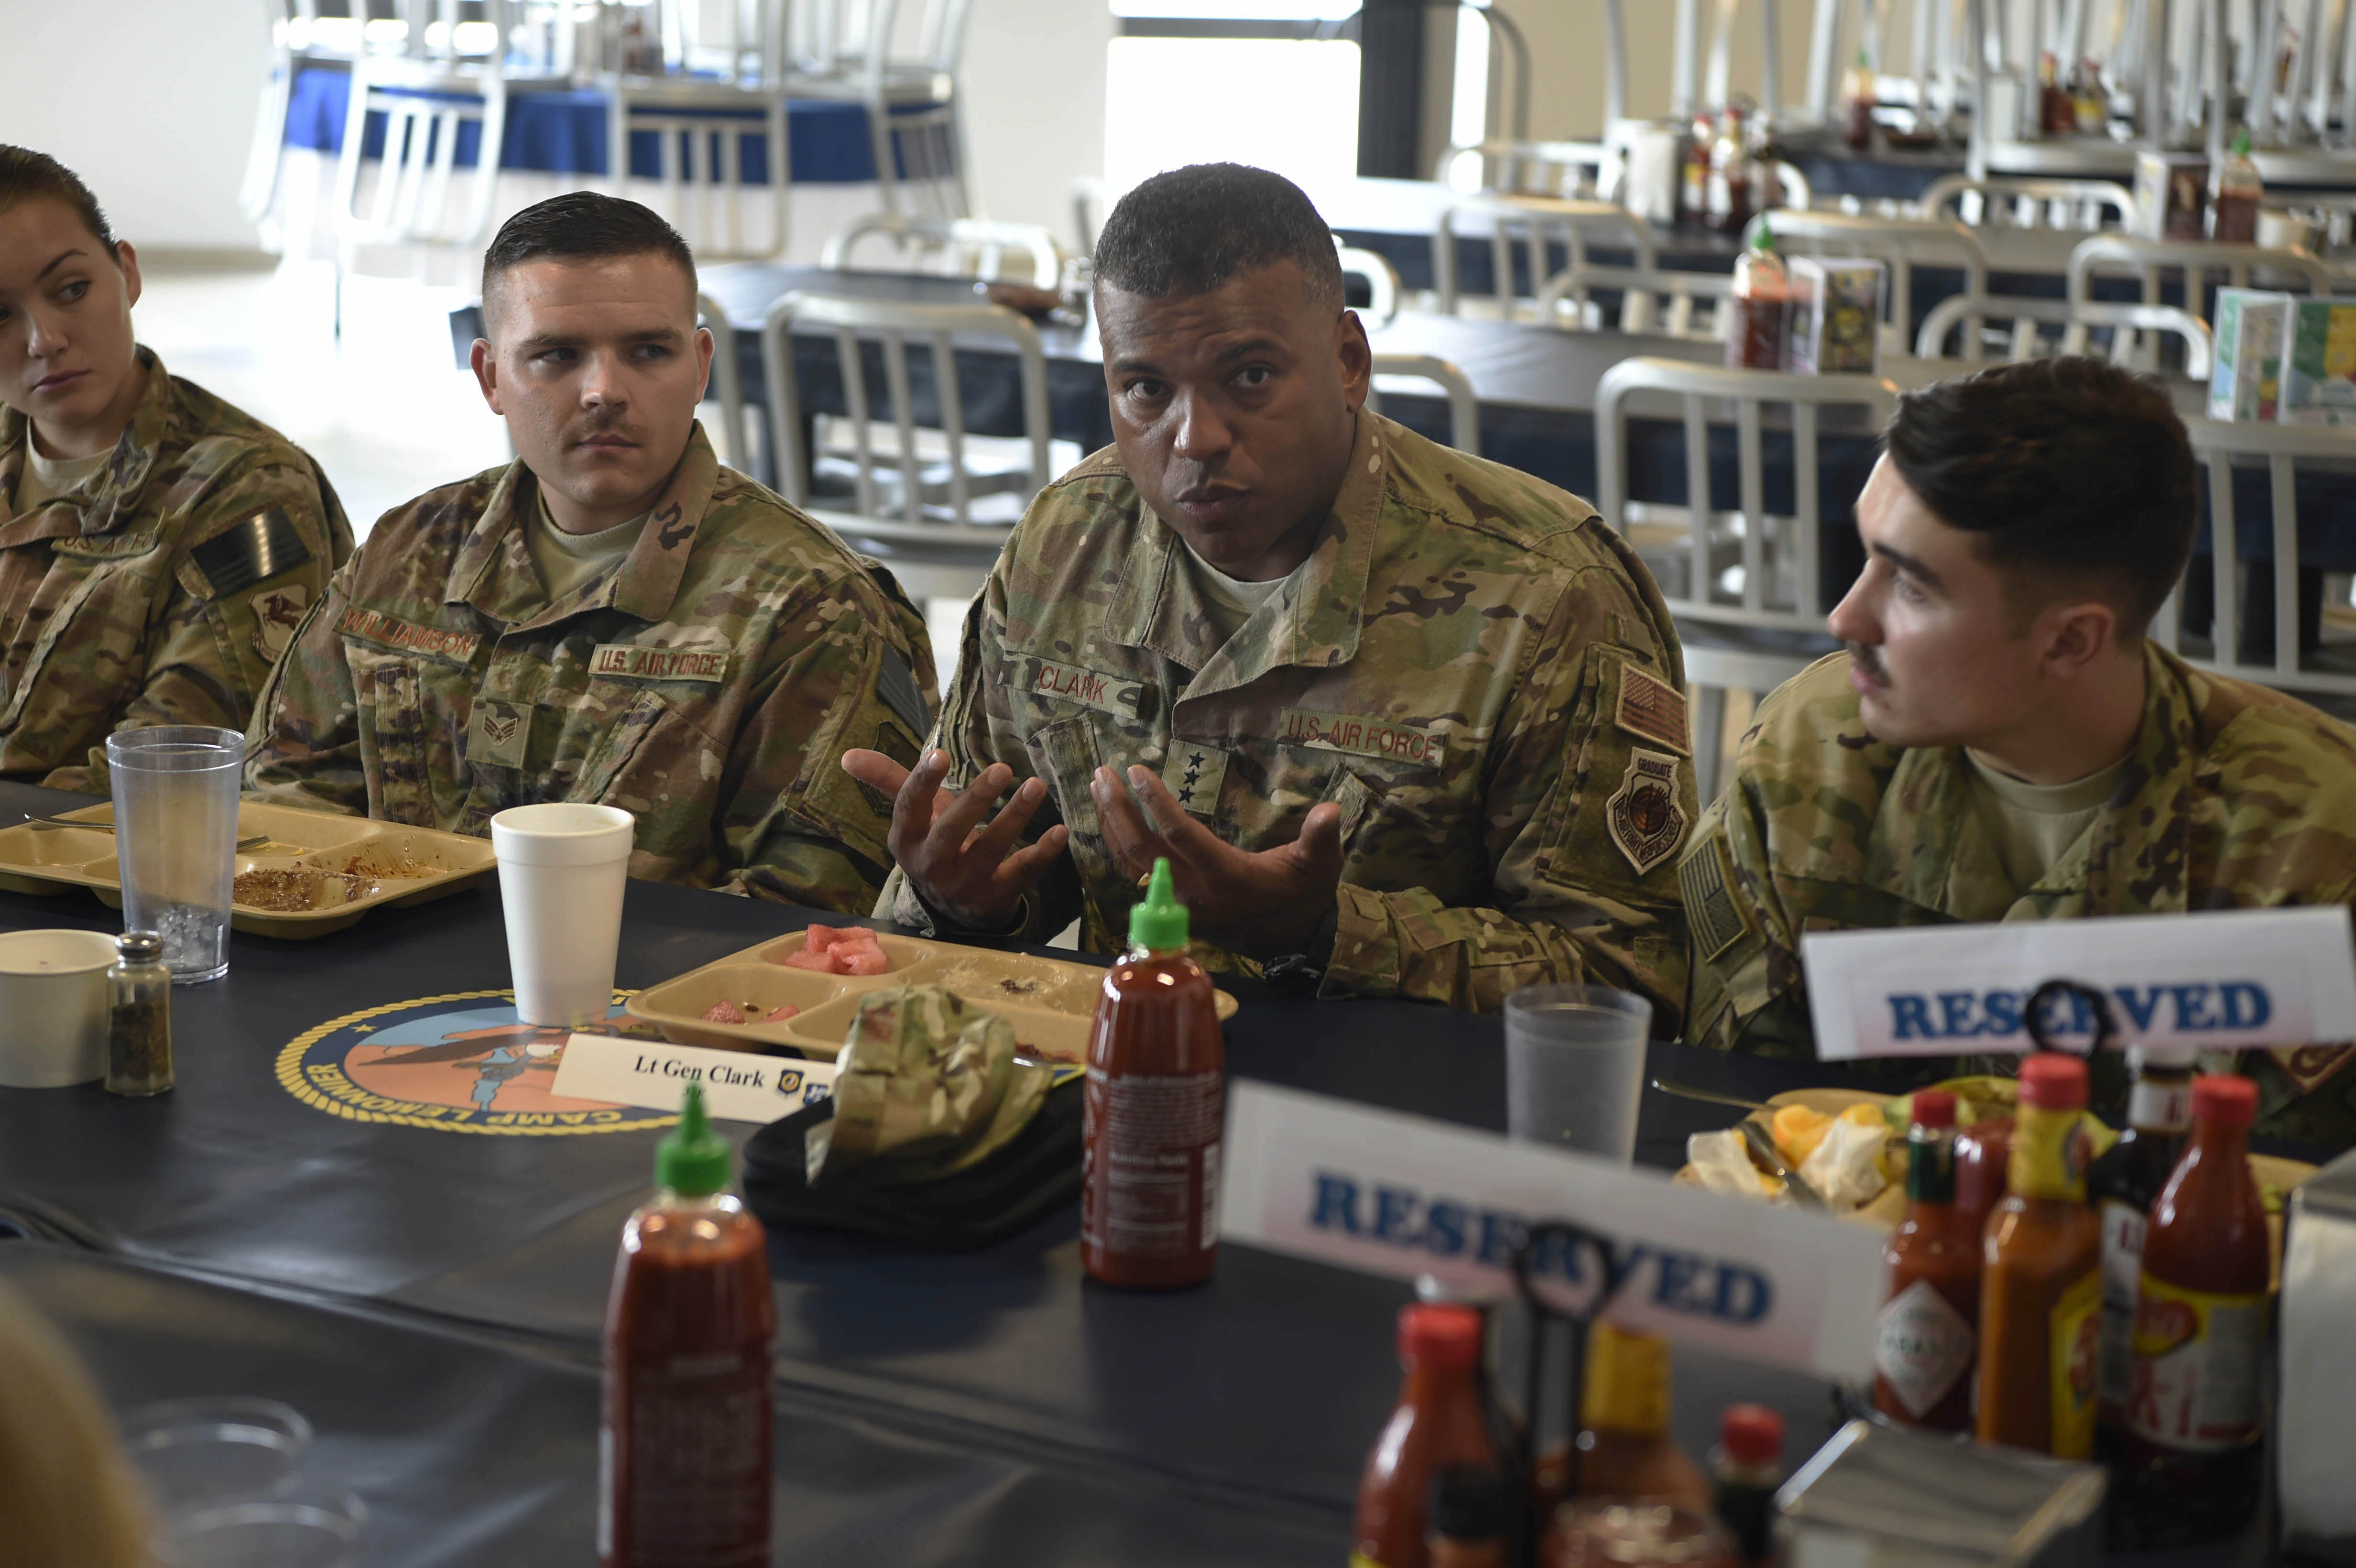 U. S. Air Force Lt. Gen. Richard Clark, 3rd Air Force/17th Expeditionary AF commander, eats breakfast with Airmen from the 449th Air Expeditionary Group at Combined Joint Task Force - Horn of Africa, Djibouti, on Oct. 17, 2017. Clark visited Airmen from around the 435th Air Expeditionary Wing deployed throughout Africa to spend time with Airmen and answer their questions. (U.S. Air Force photo by Staff Sgt. Joshua R. M. Dewberry)